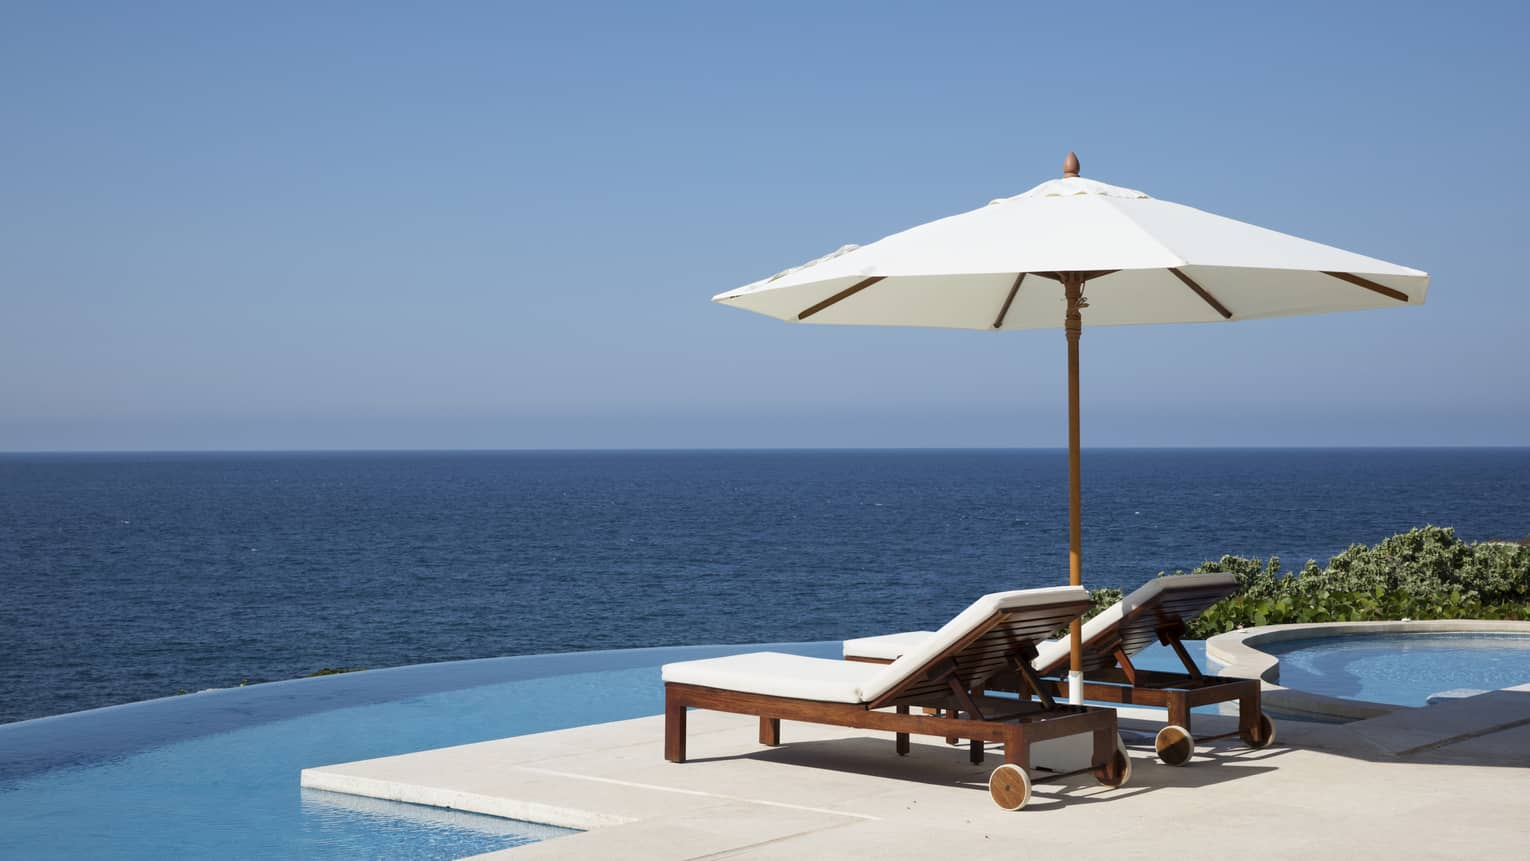 Two lounge chairs under white patio umbrella at edge of infinity pool, ocean views